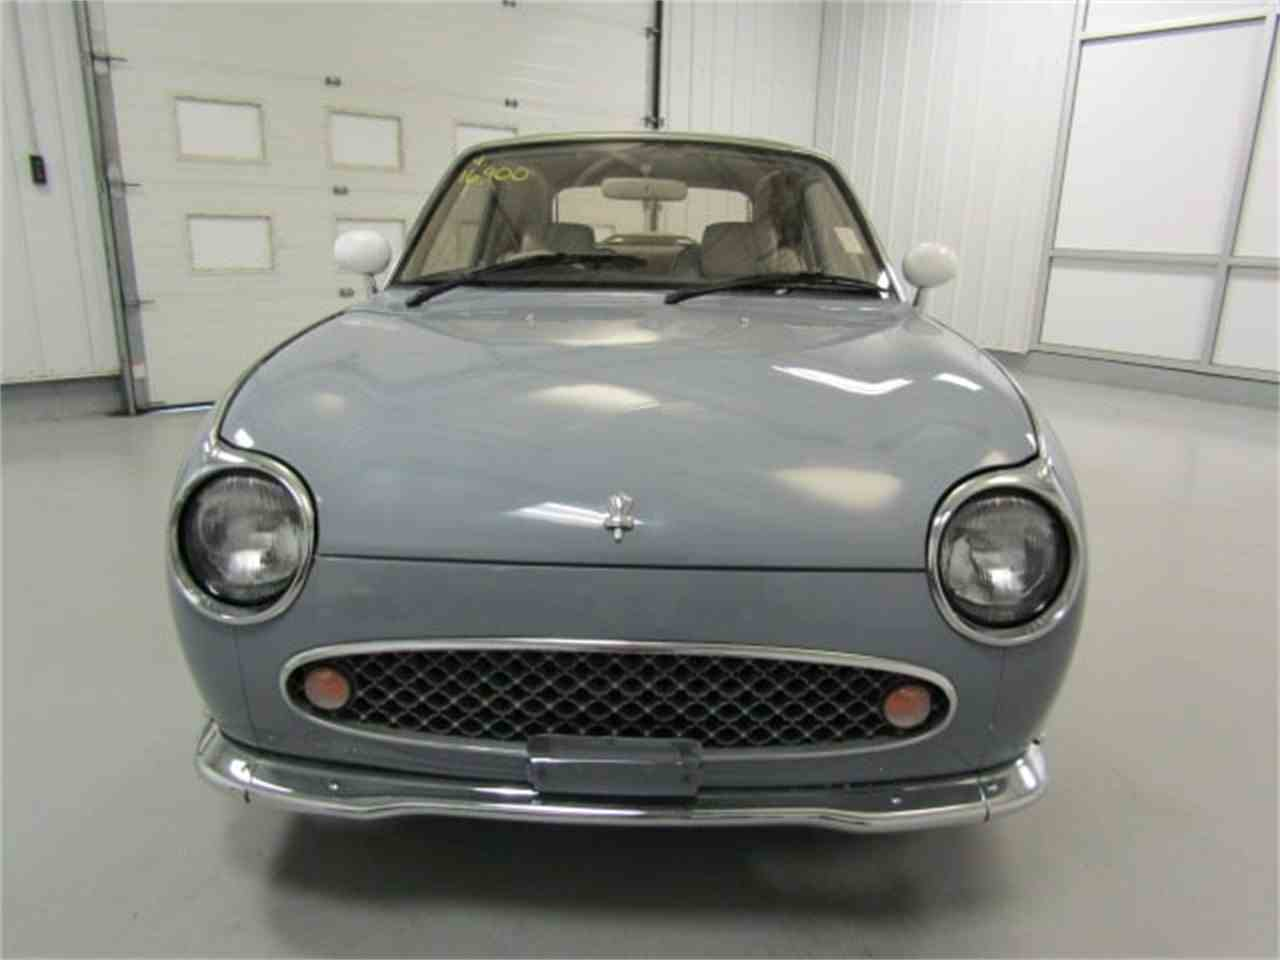 Large Picture of 1991 Nissan Figaro located in Christiansburg Virginia - $16,900.00 - LI23